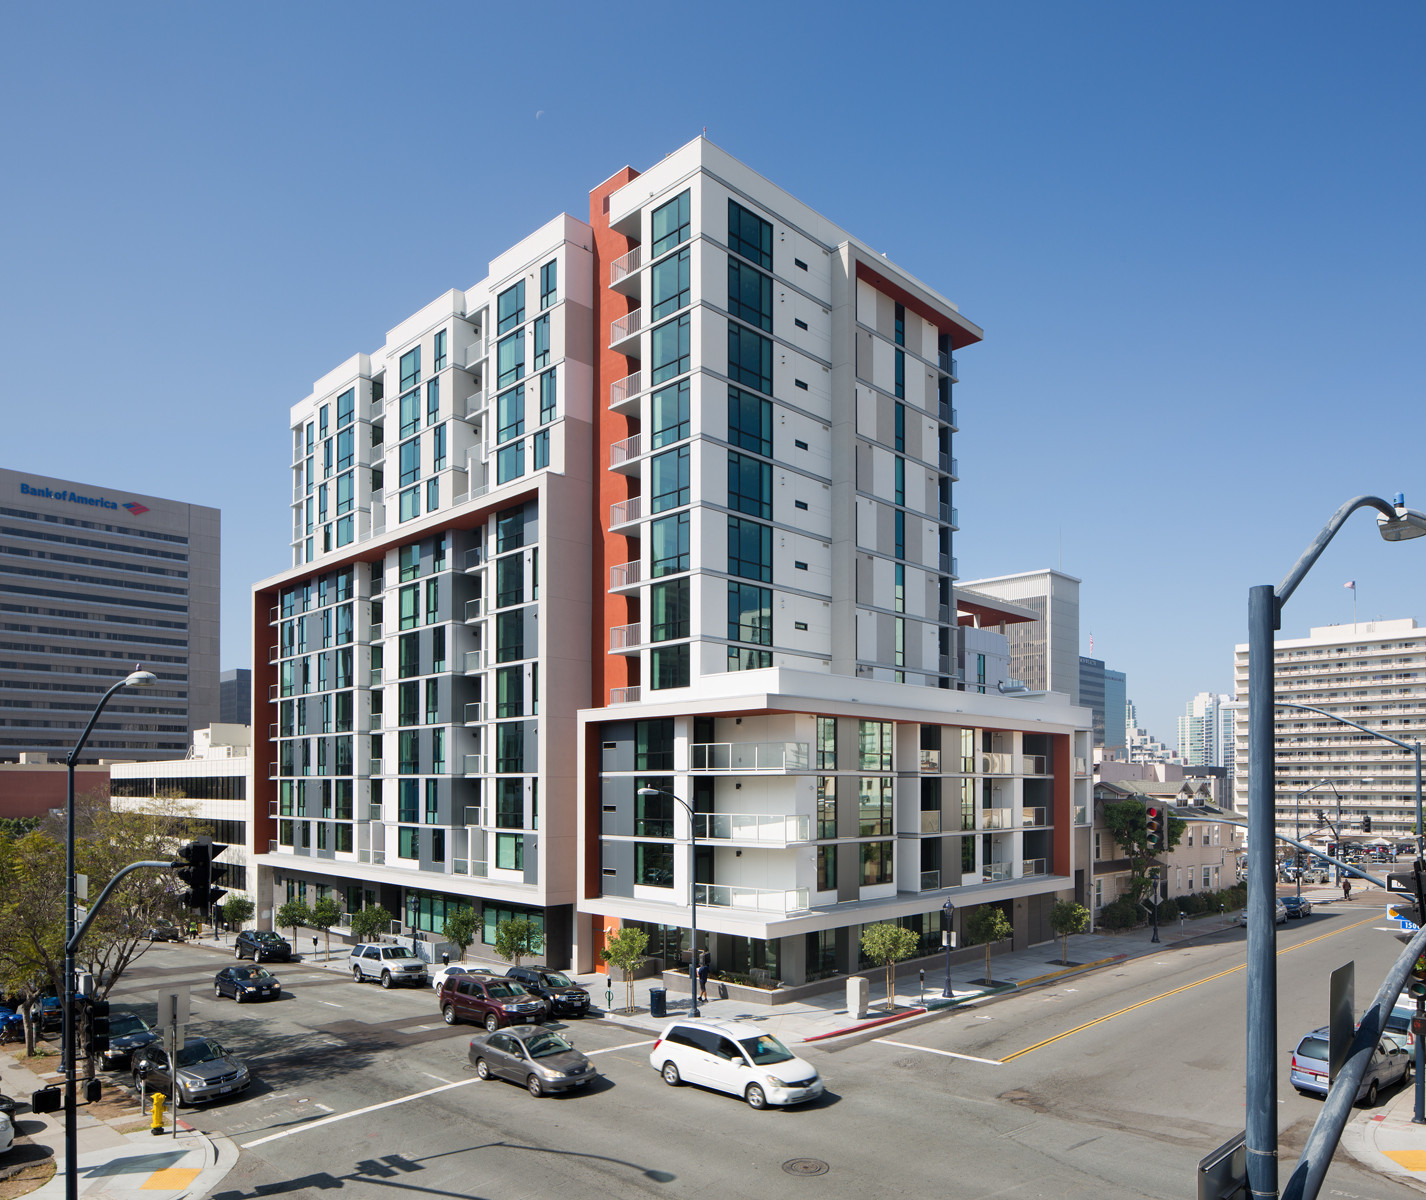 Living in downtown san diego with a balcony for 525 a month the san diego union tribune - Apartment buildings san diego ...